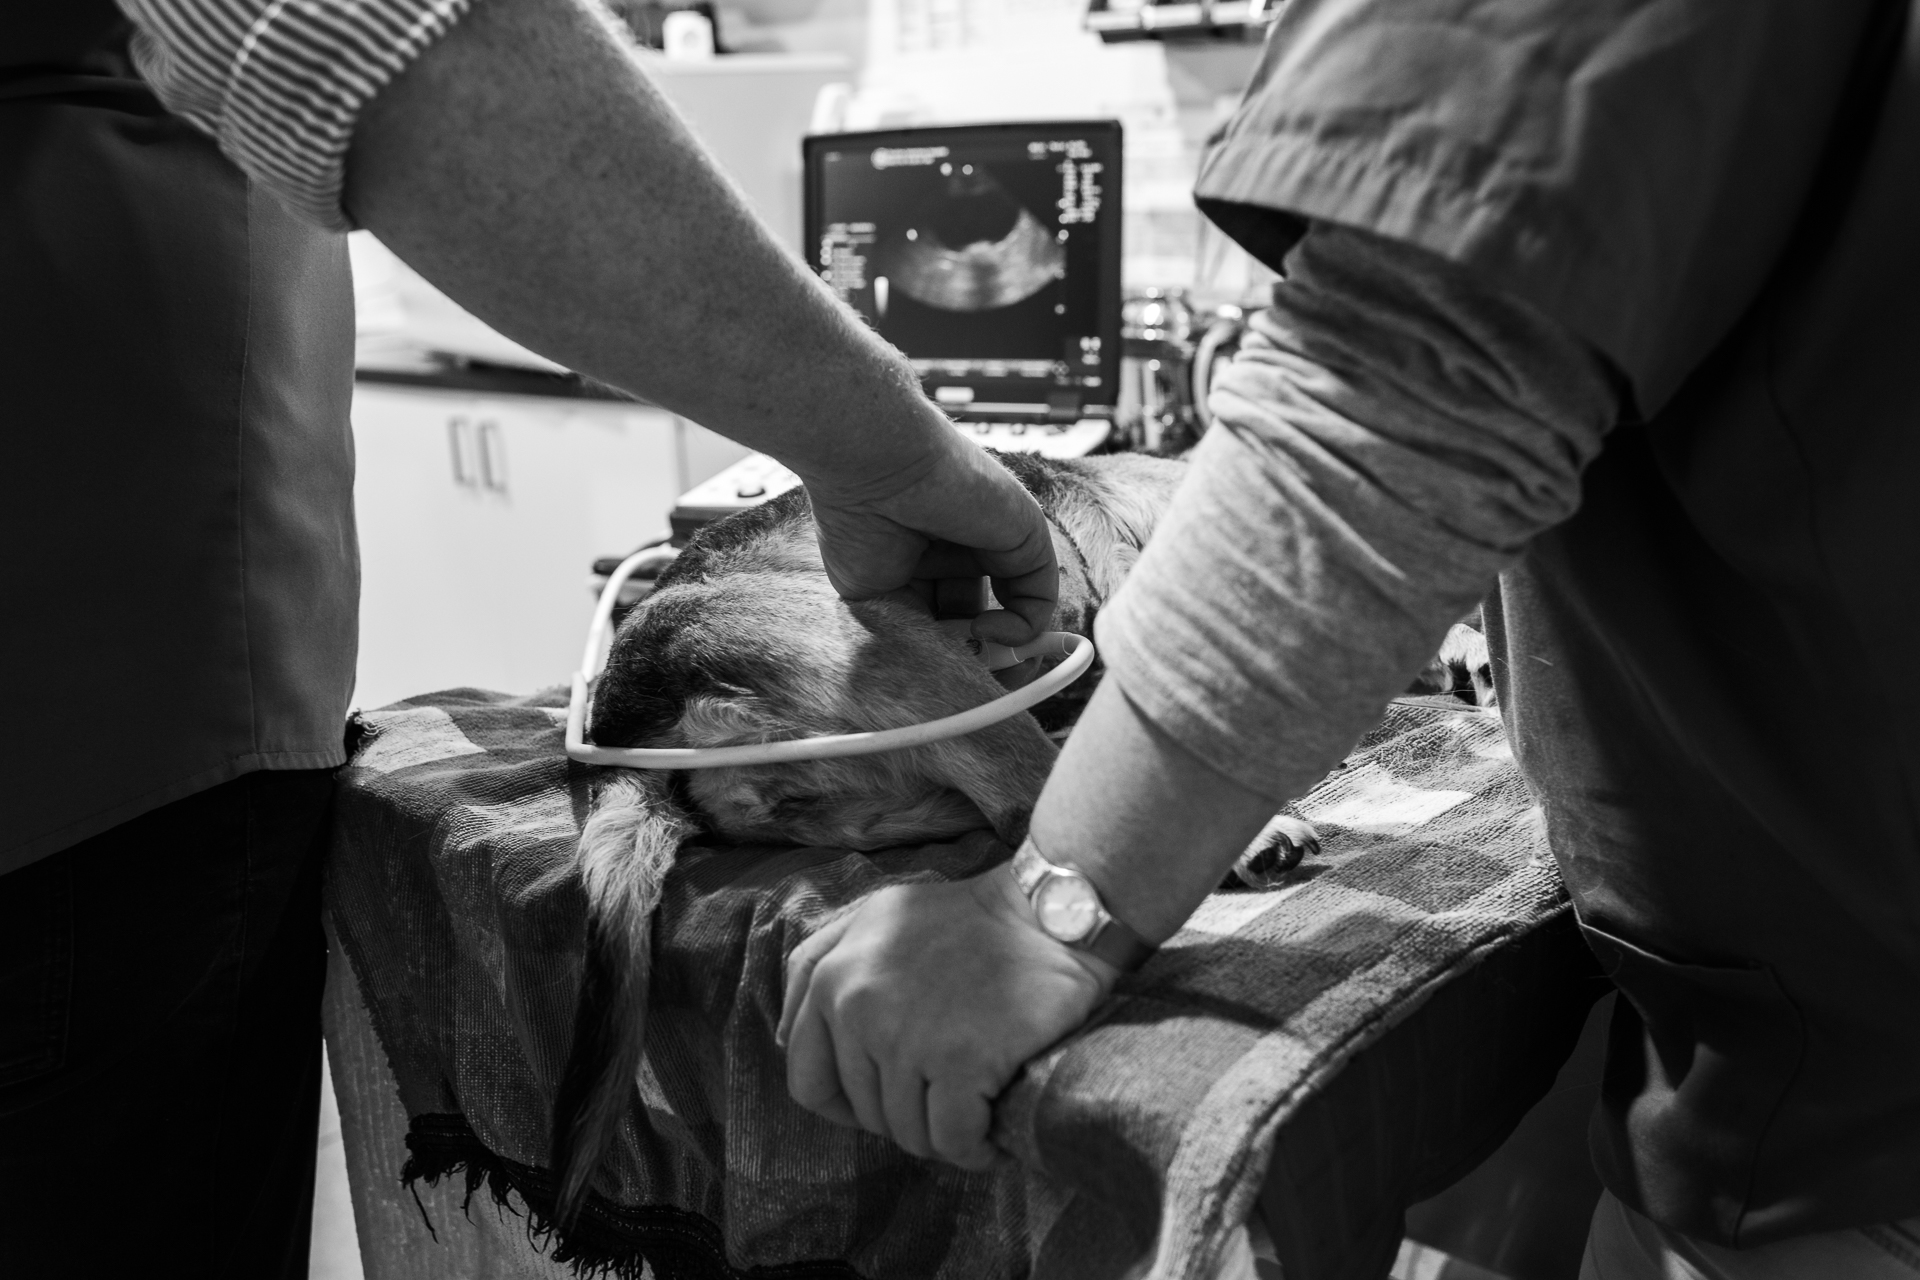 Ultrasound showed that this very sick dog's liver was tumorous. The only option was euthanasia and it had to be done as quickly as the dog's owner could get back to the practice.  6 July, 2018.